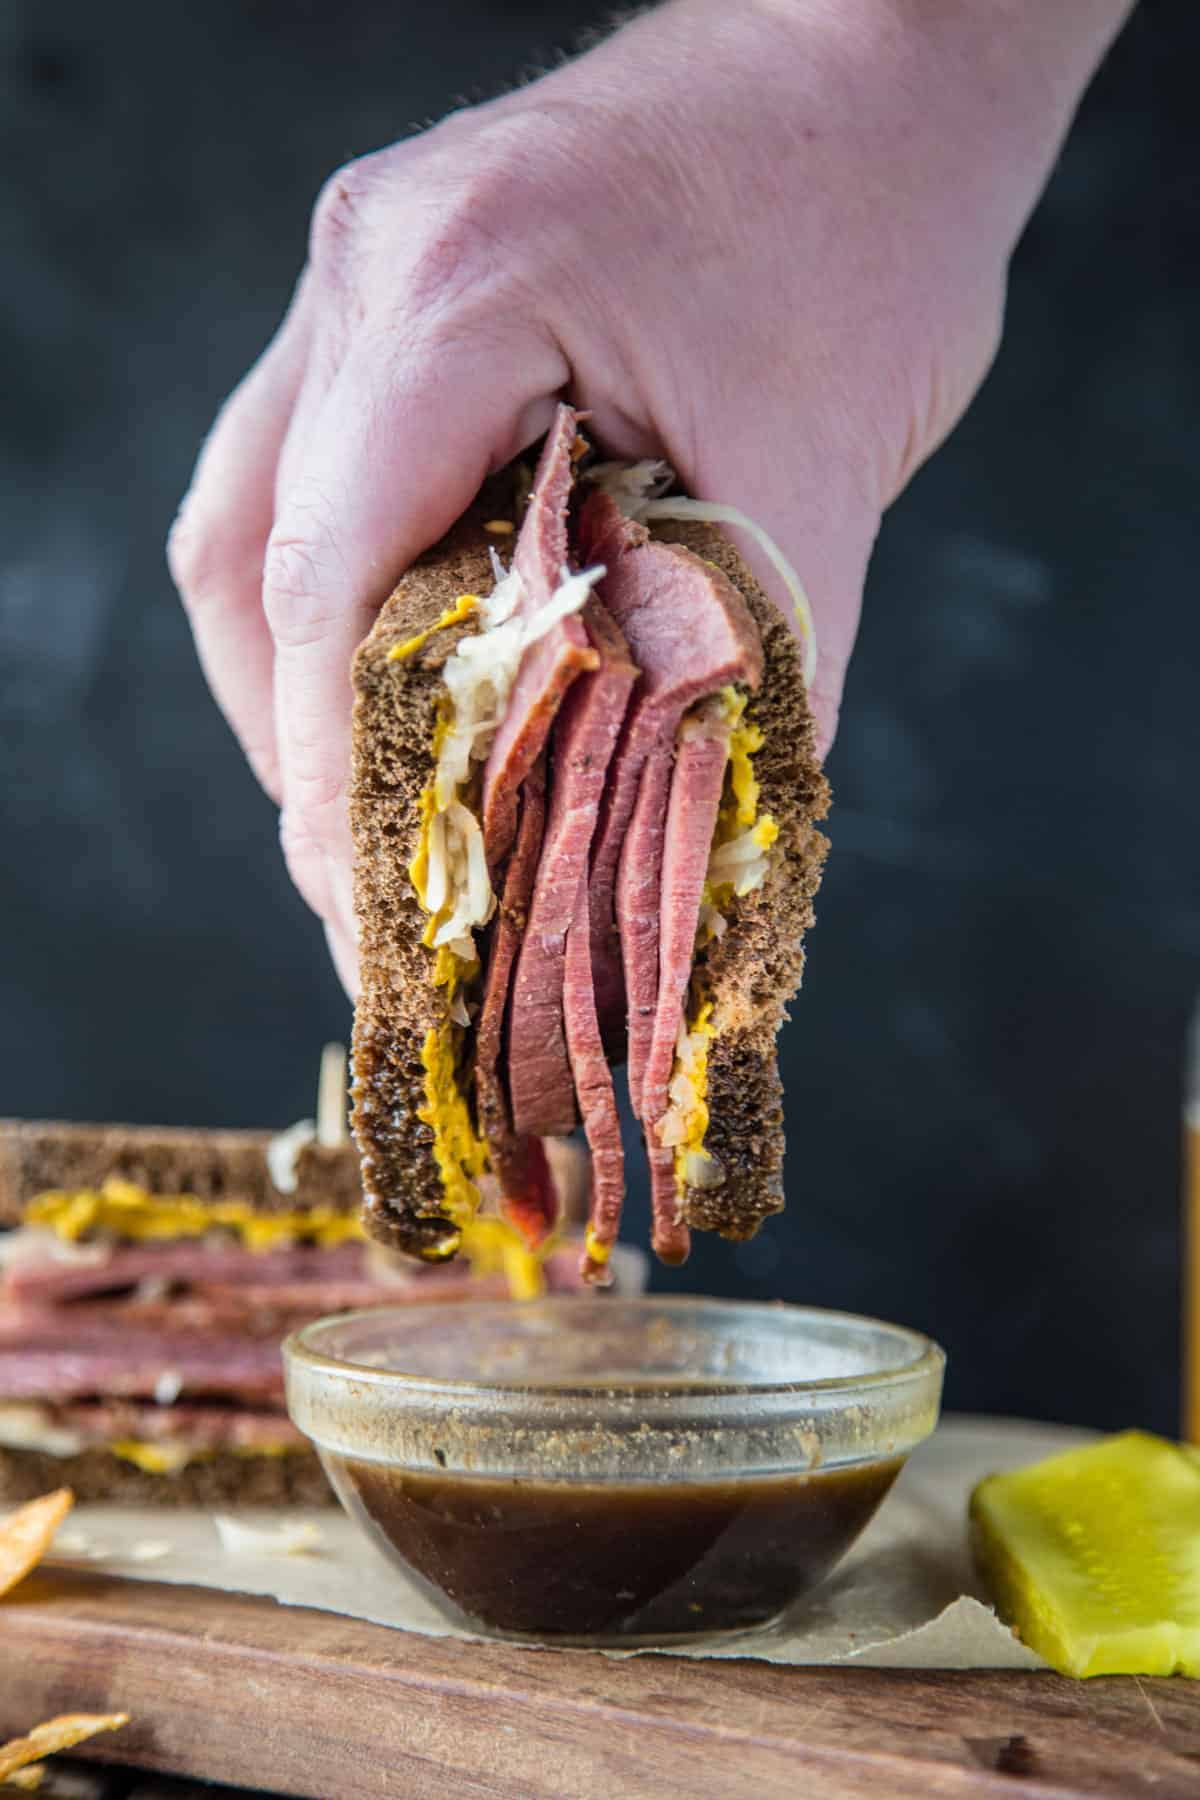 Dipping a Corned Beef Sandwich in Guinness Au Jus dipping sauce